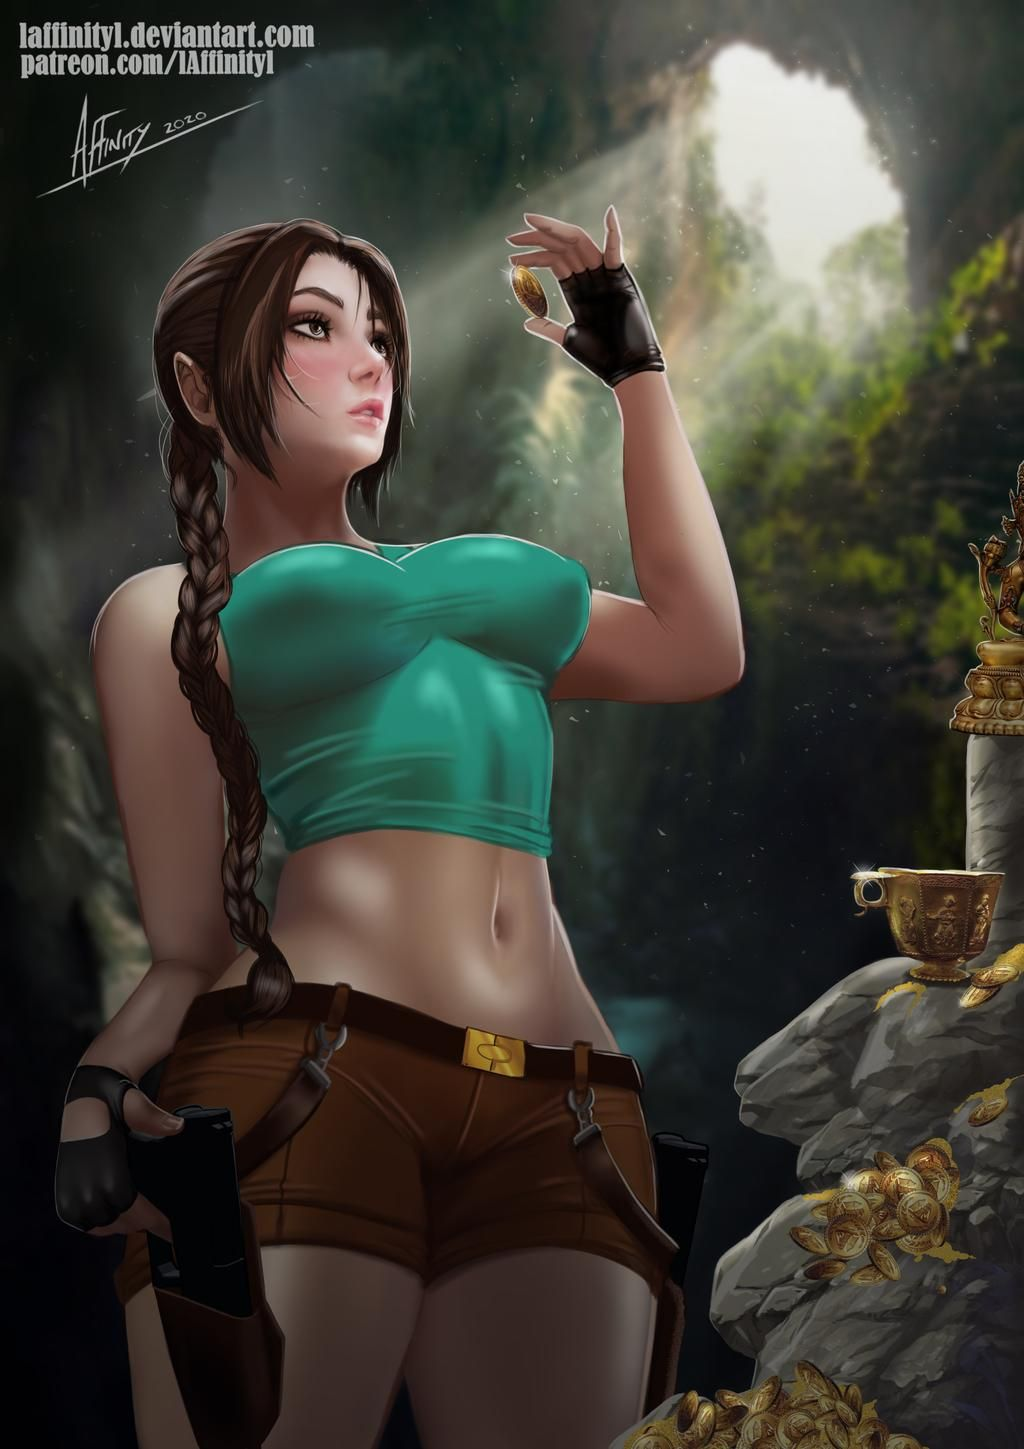 Pin by .1TRH1. on Lara Croft in 2020 (With images) | Lara